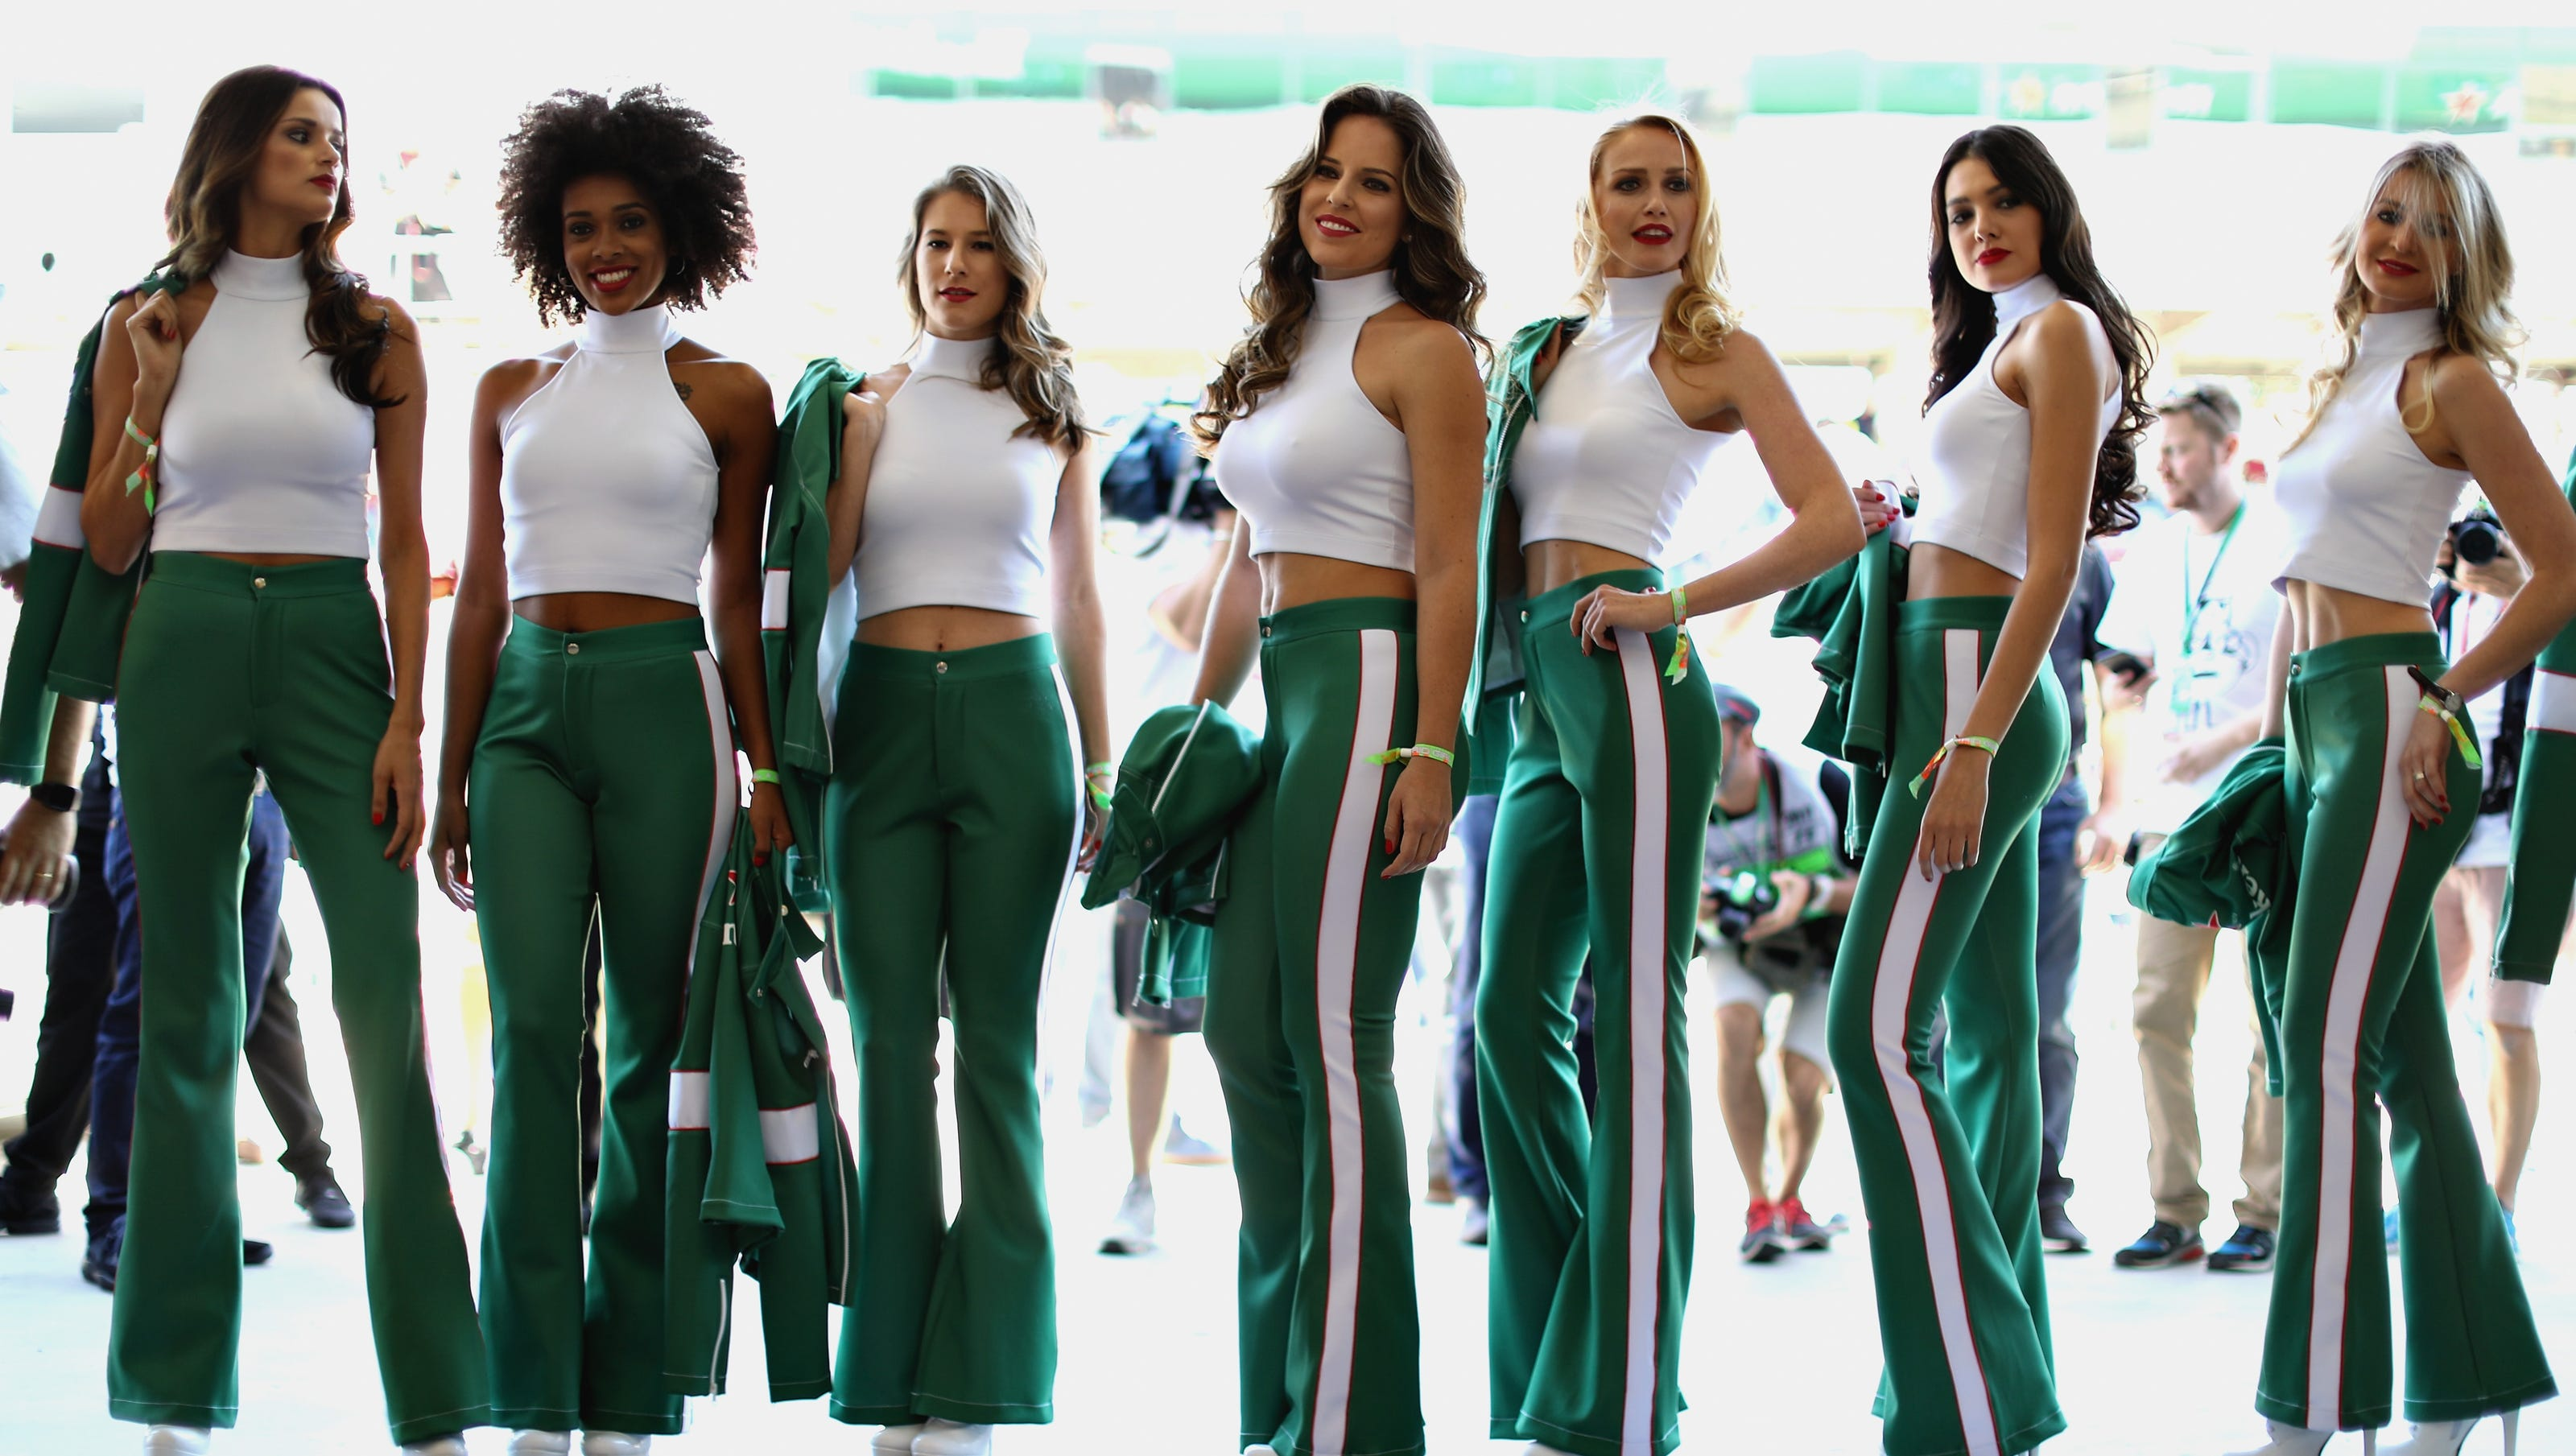 Russia Aims To Bring Back Grid Girls To Formula One